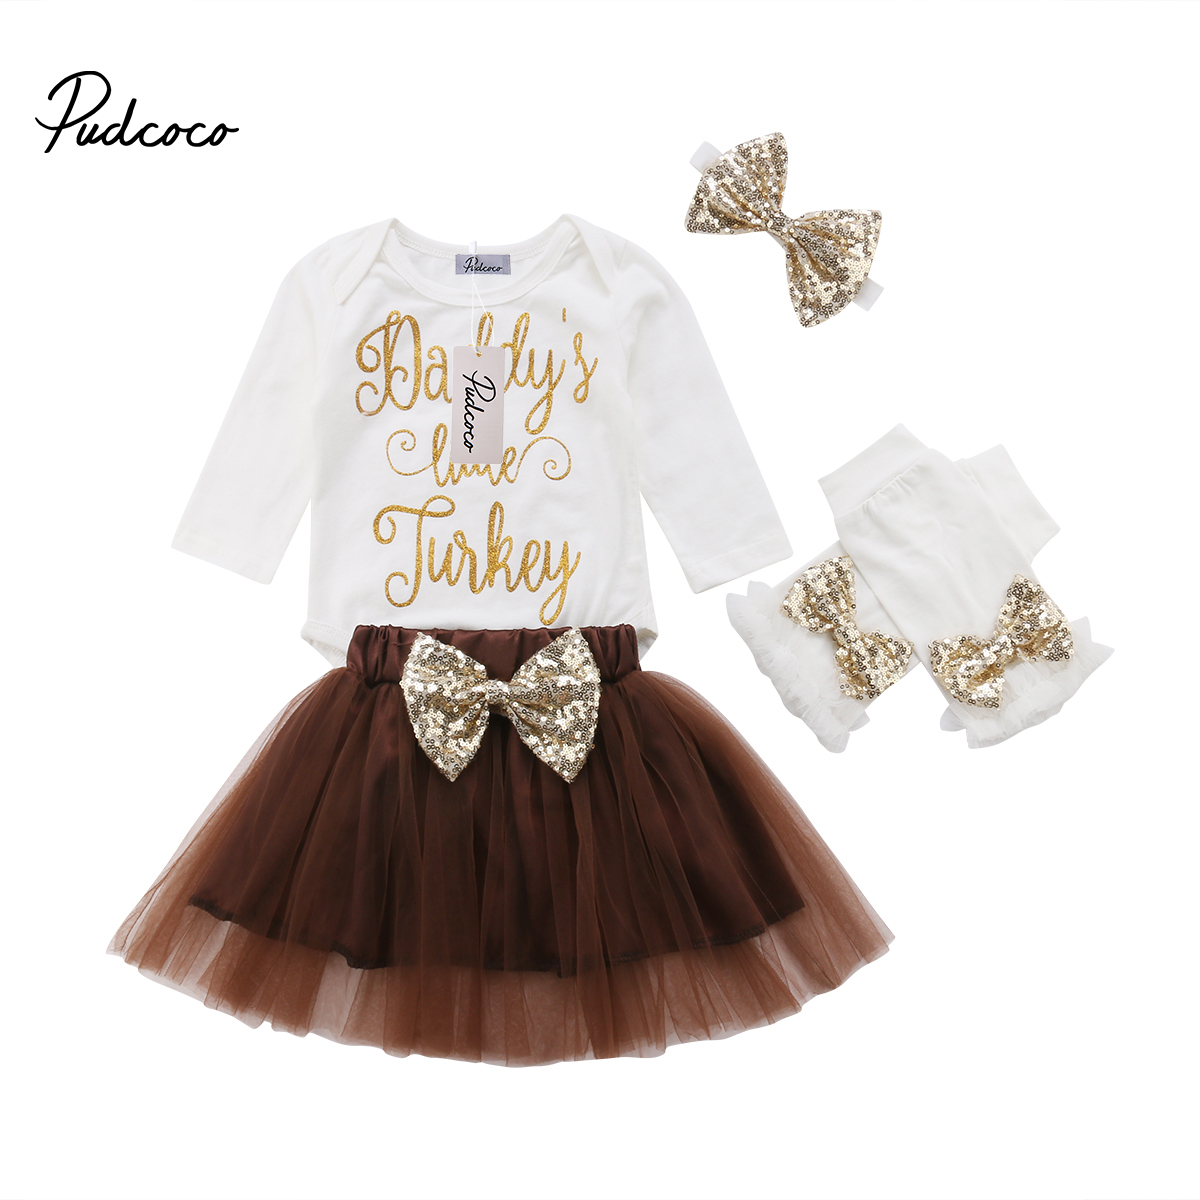 Infant Baby Girls Thanksgiving Outfit Newborn Romper Tops + Tutu Skirt + Leg Warmers Headband 4PCS Set 2016 baby girls summer clothing sets baby girl romper suits romper tutu skirt headband infant newborn baby clothes baby romper